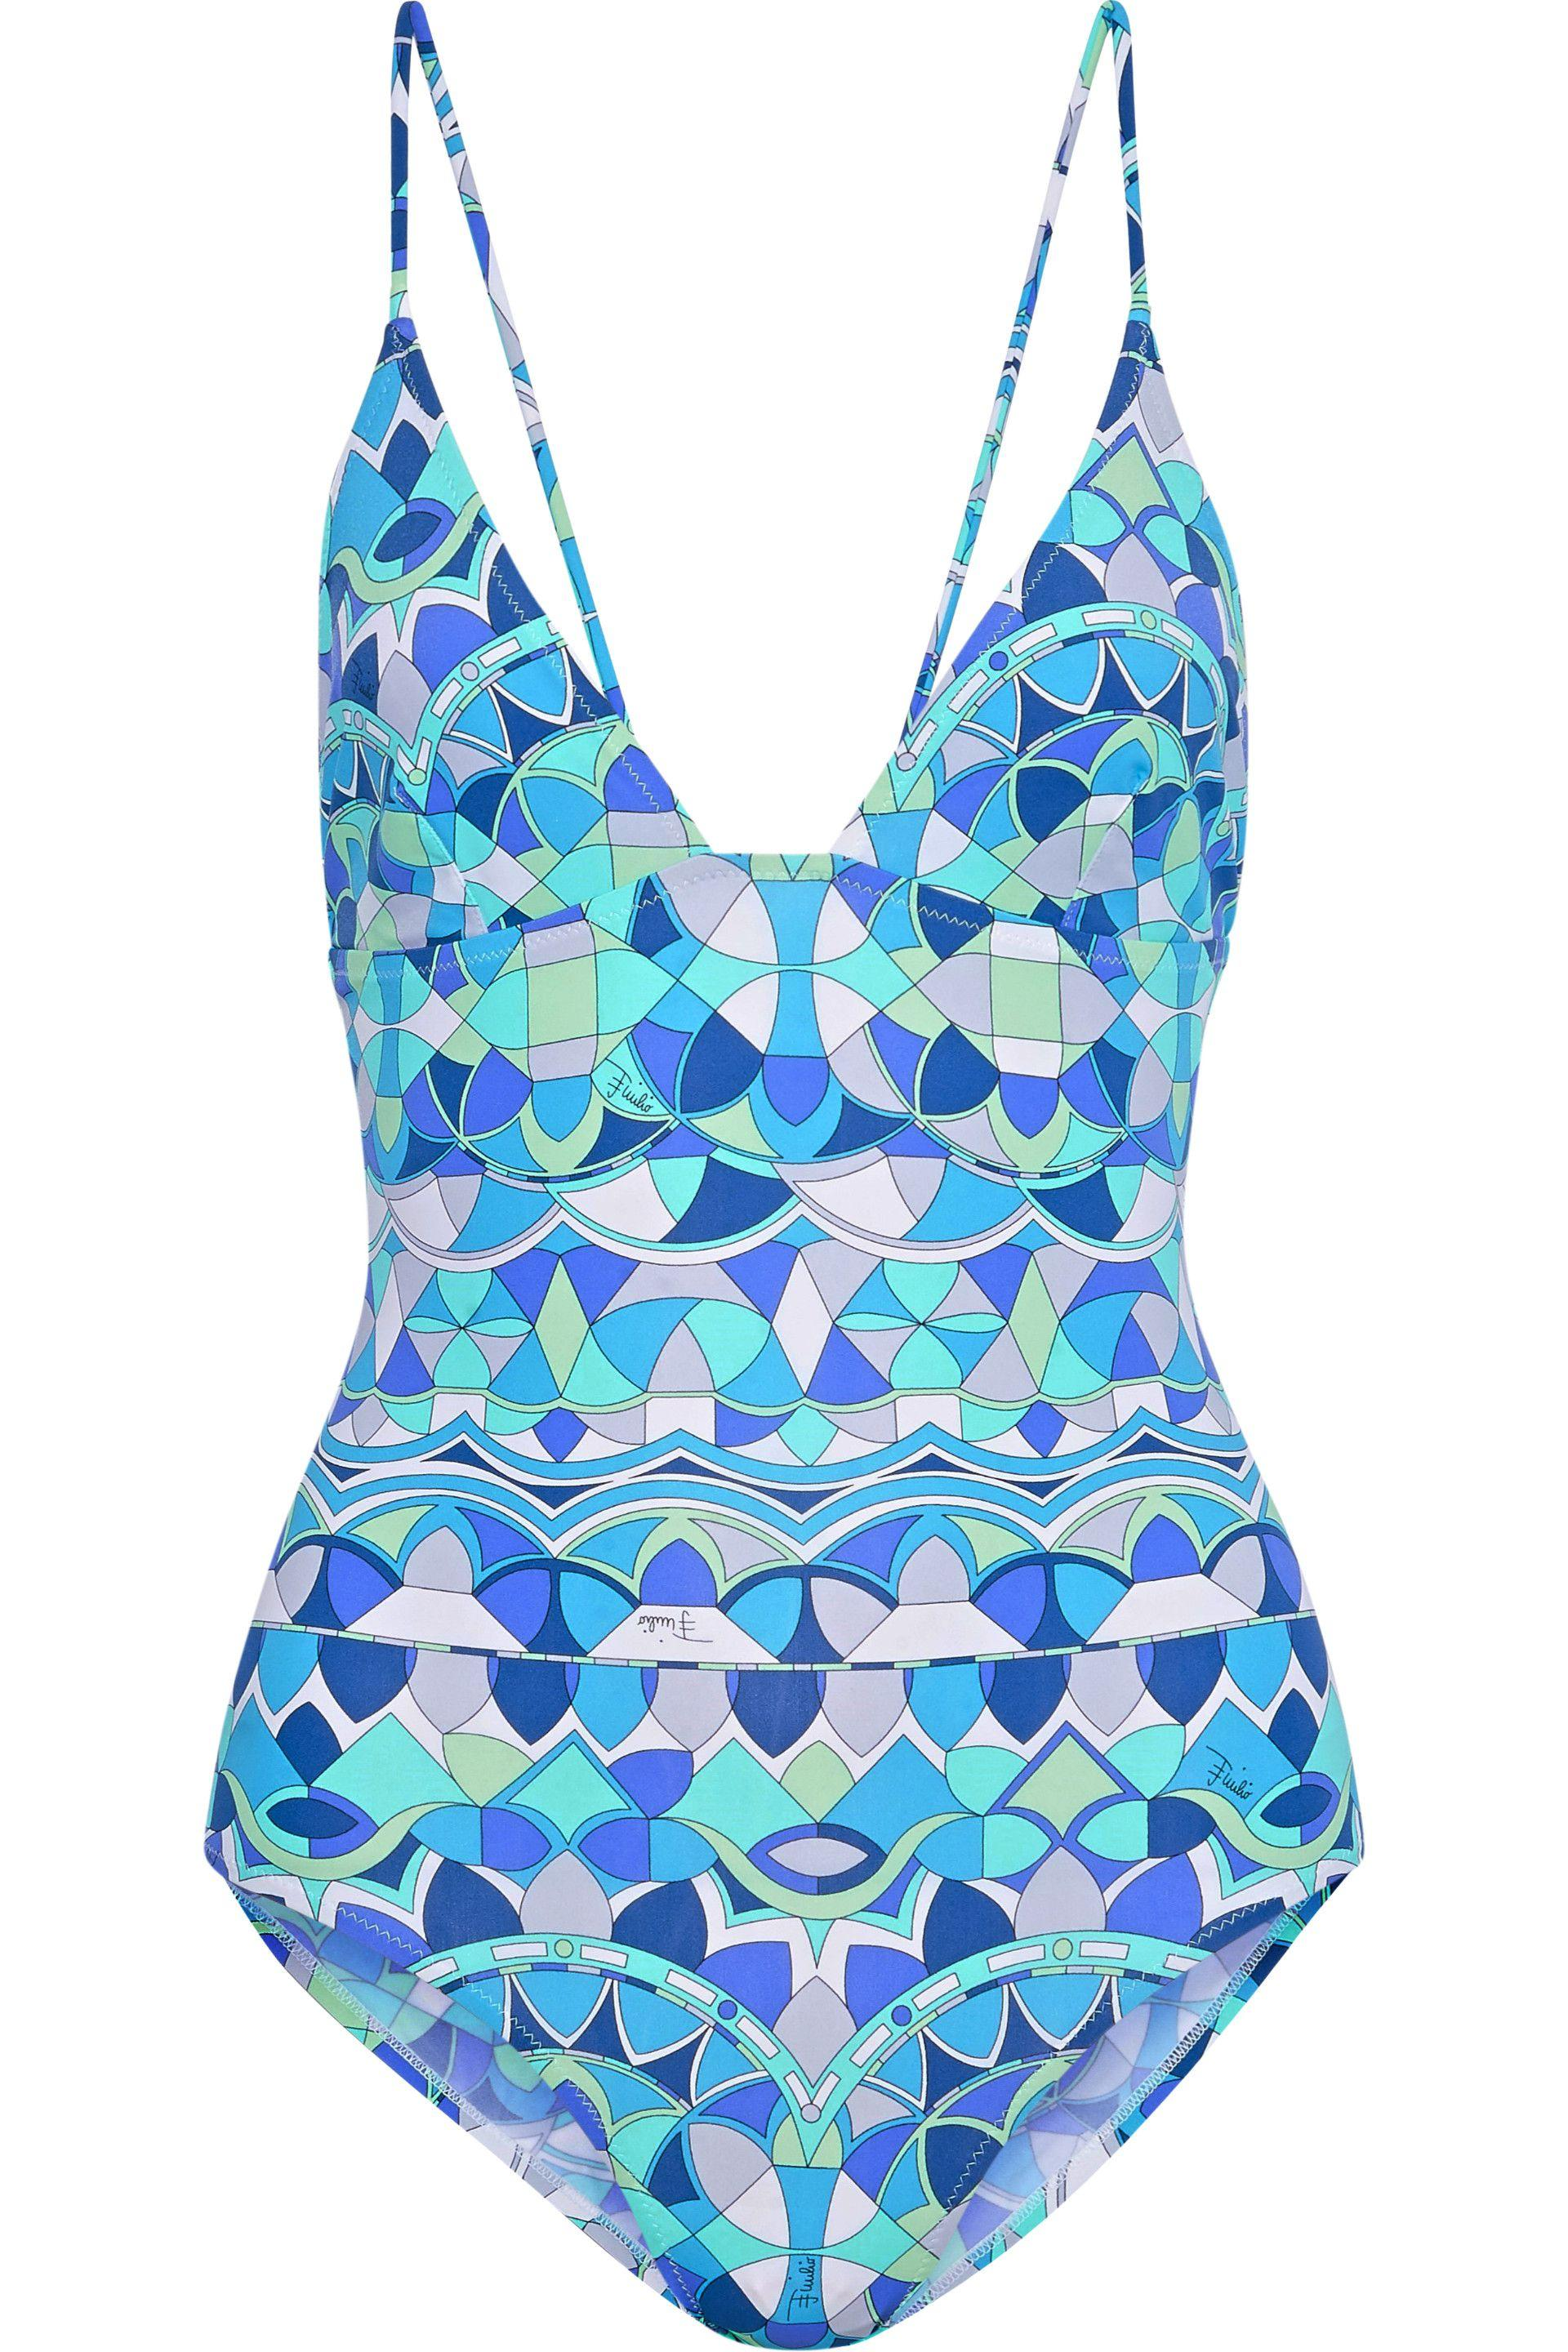 9455b4ebd57 Emilio Pucci. Women's Blue Woman Ring-embellished Printed Swimsuit Turquoise